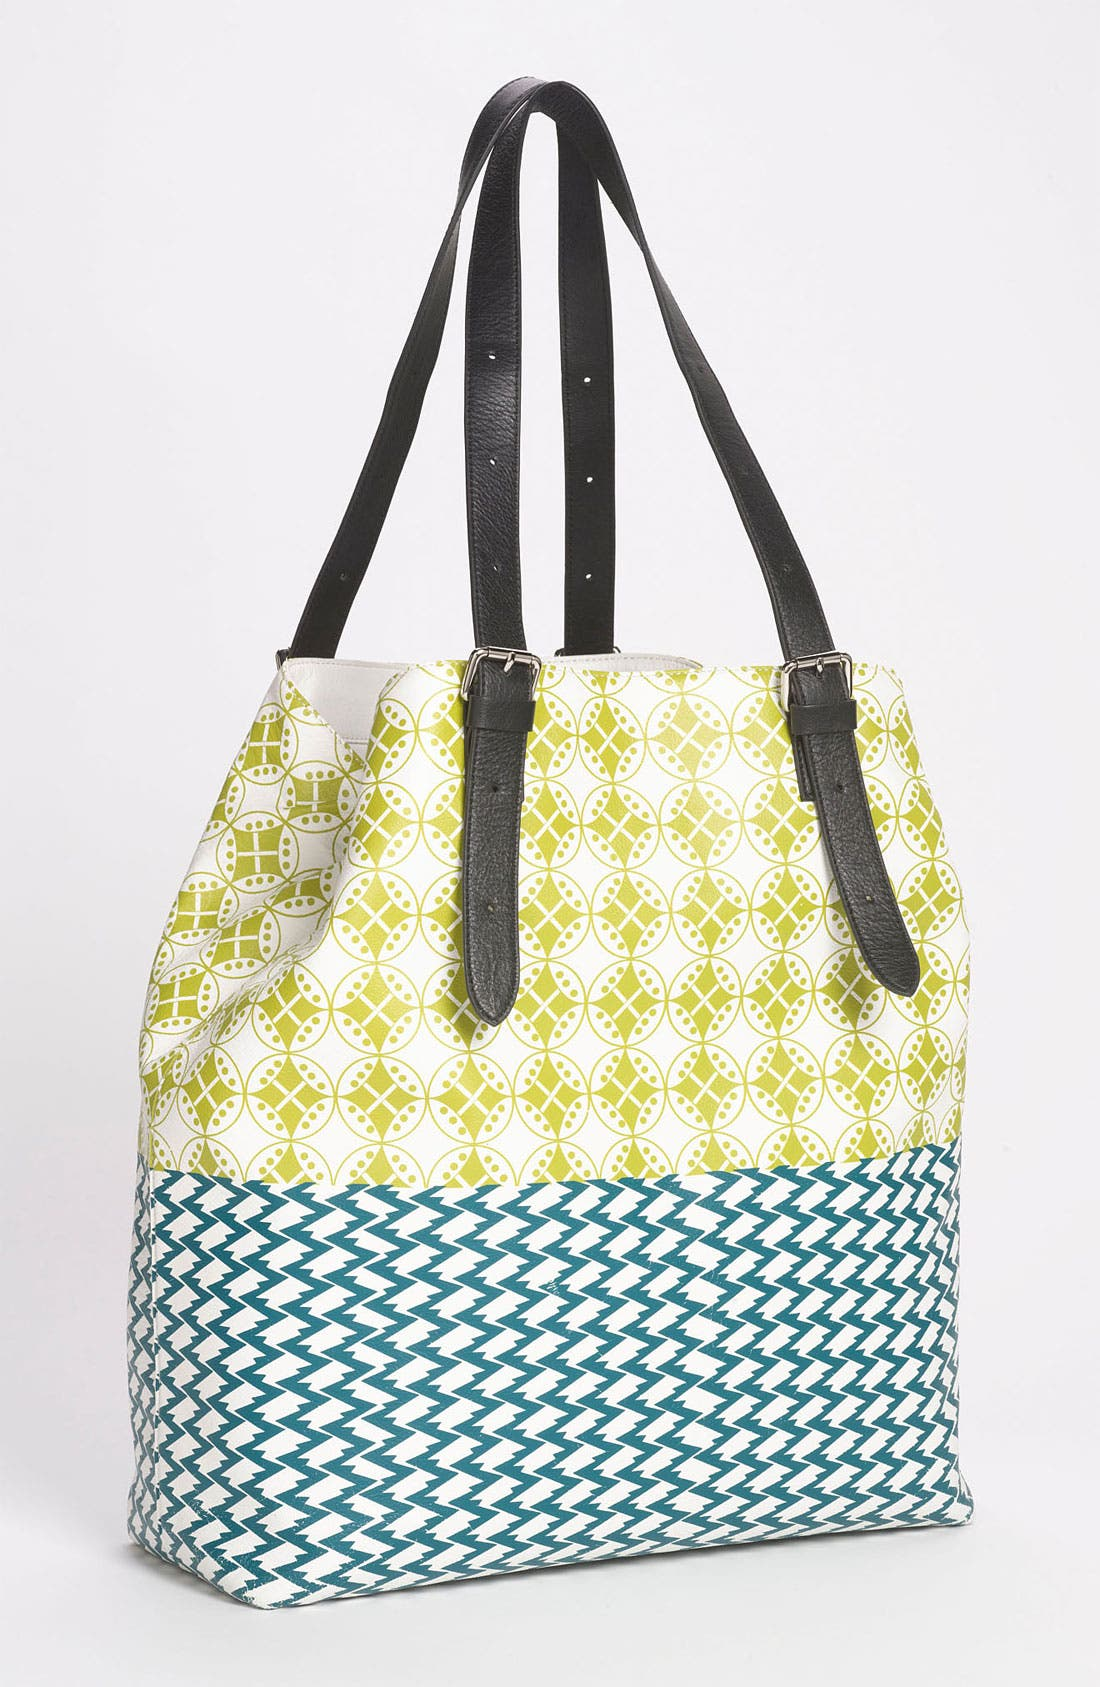 Alternate Image 1 Selected - Yarnz 'Bows & Arrows' Leather Tote